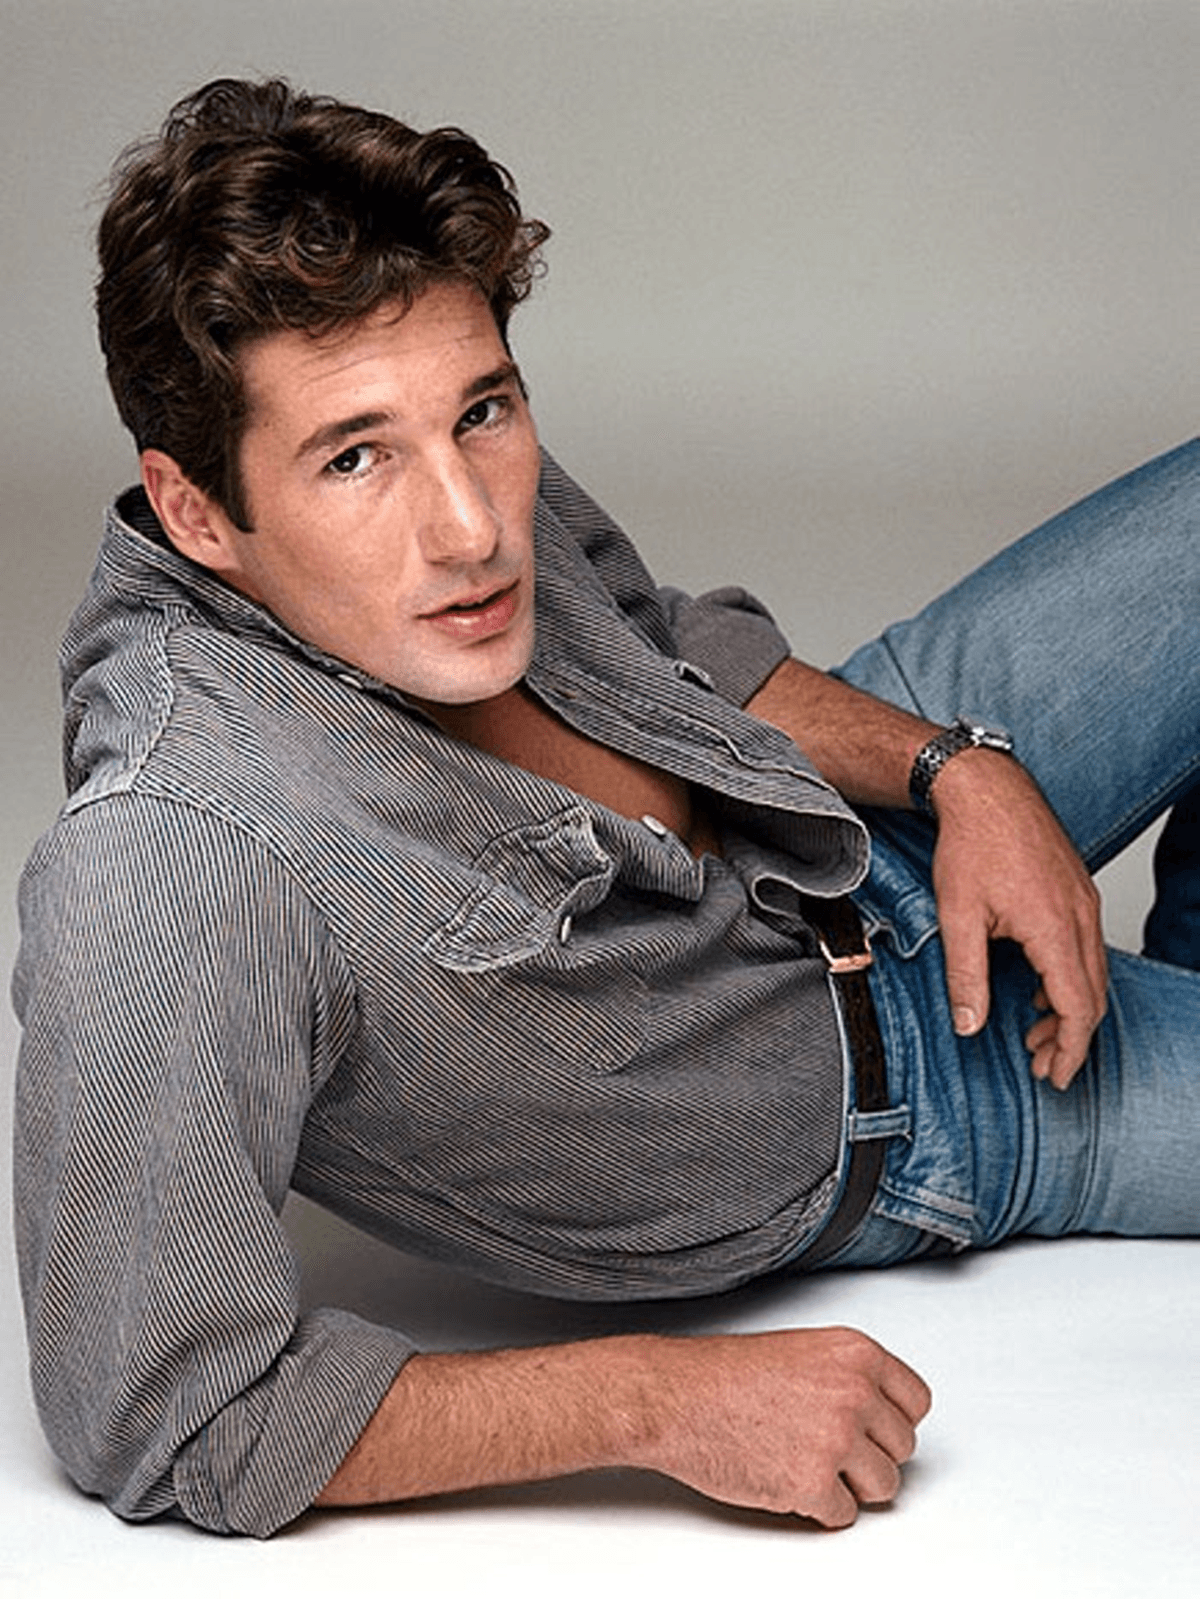 91 The 18 Hottest Photos Of Hollywood Males You've EVER Seen!